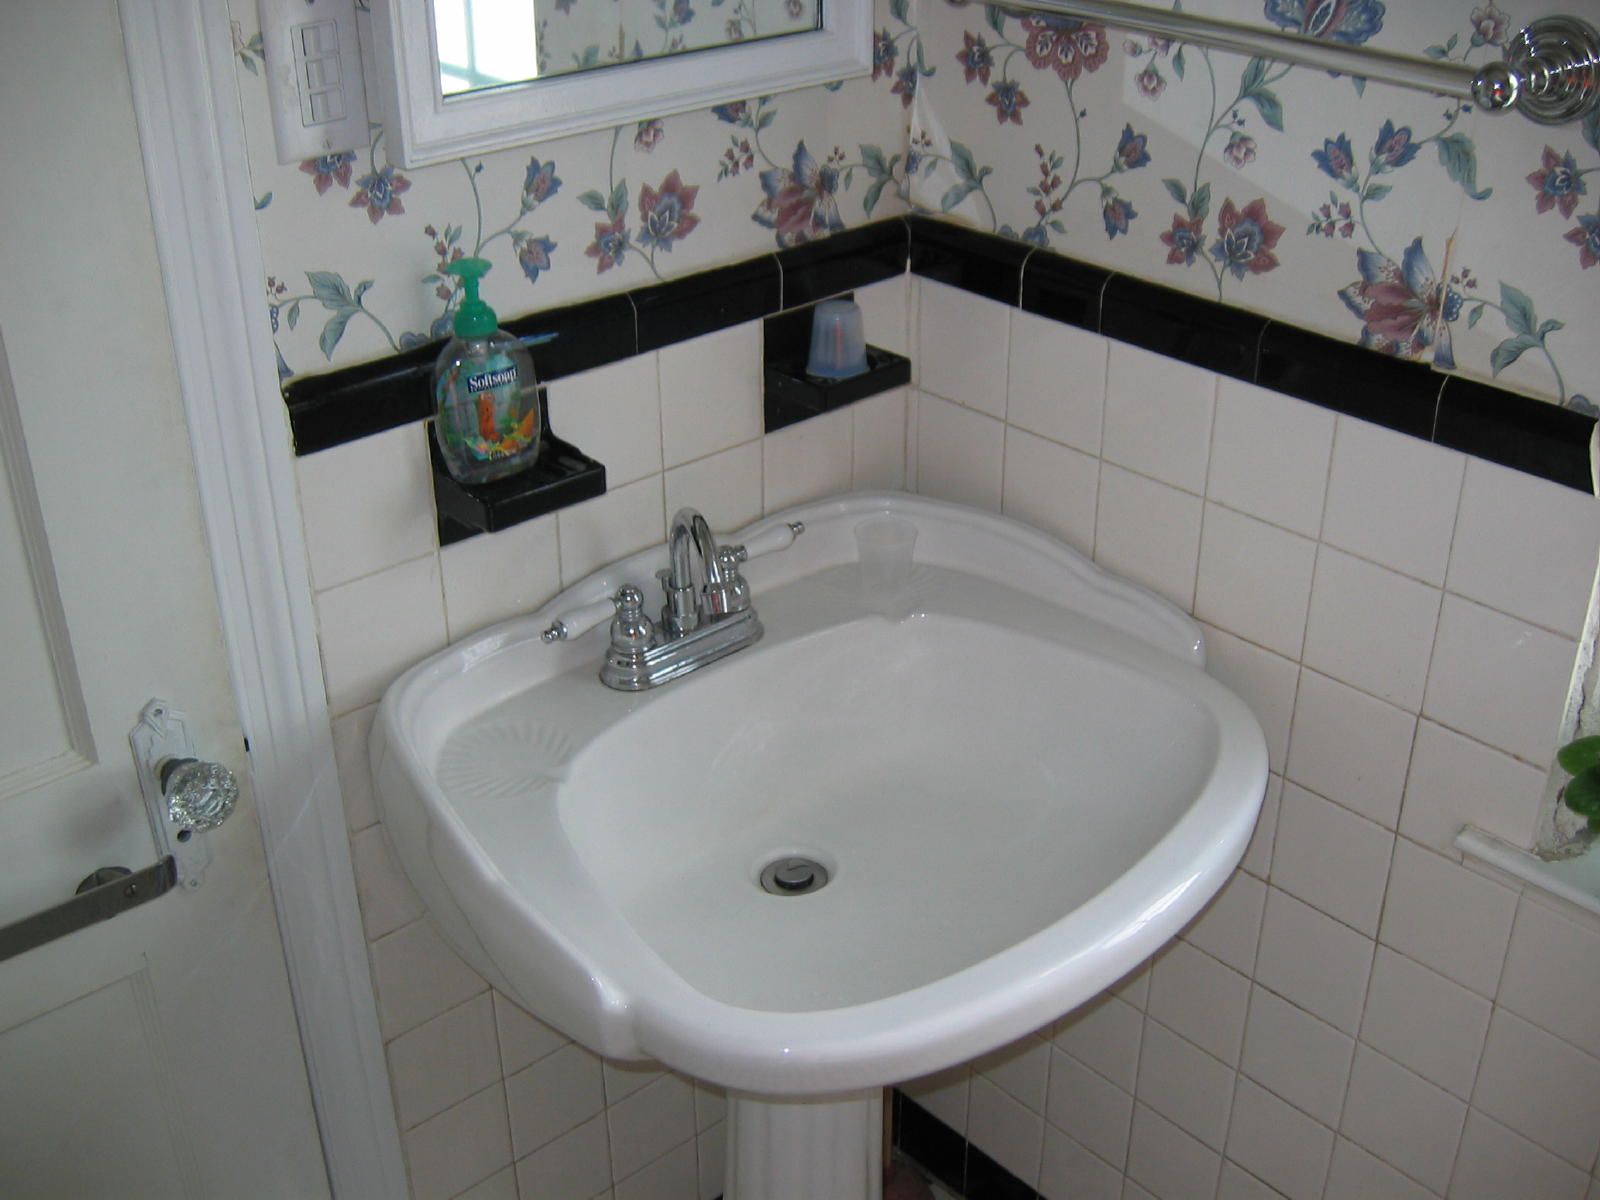 Cast Iron Tub Removal Page 4 Remodeling Contractor Talk